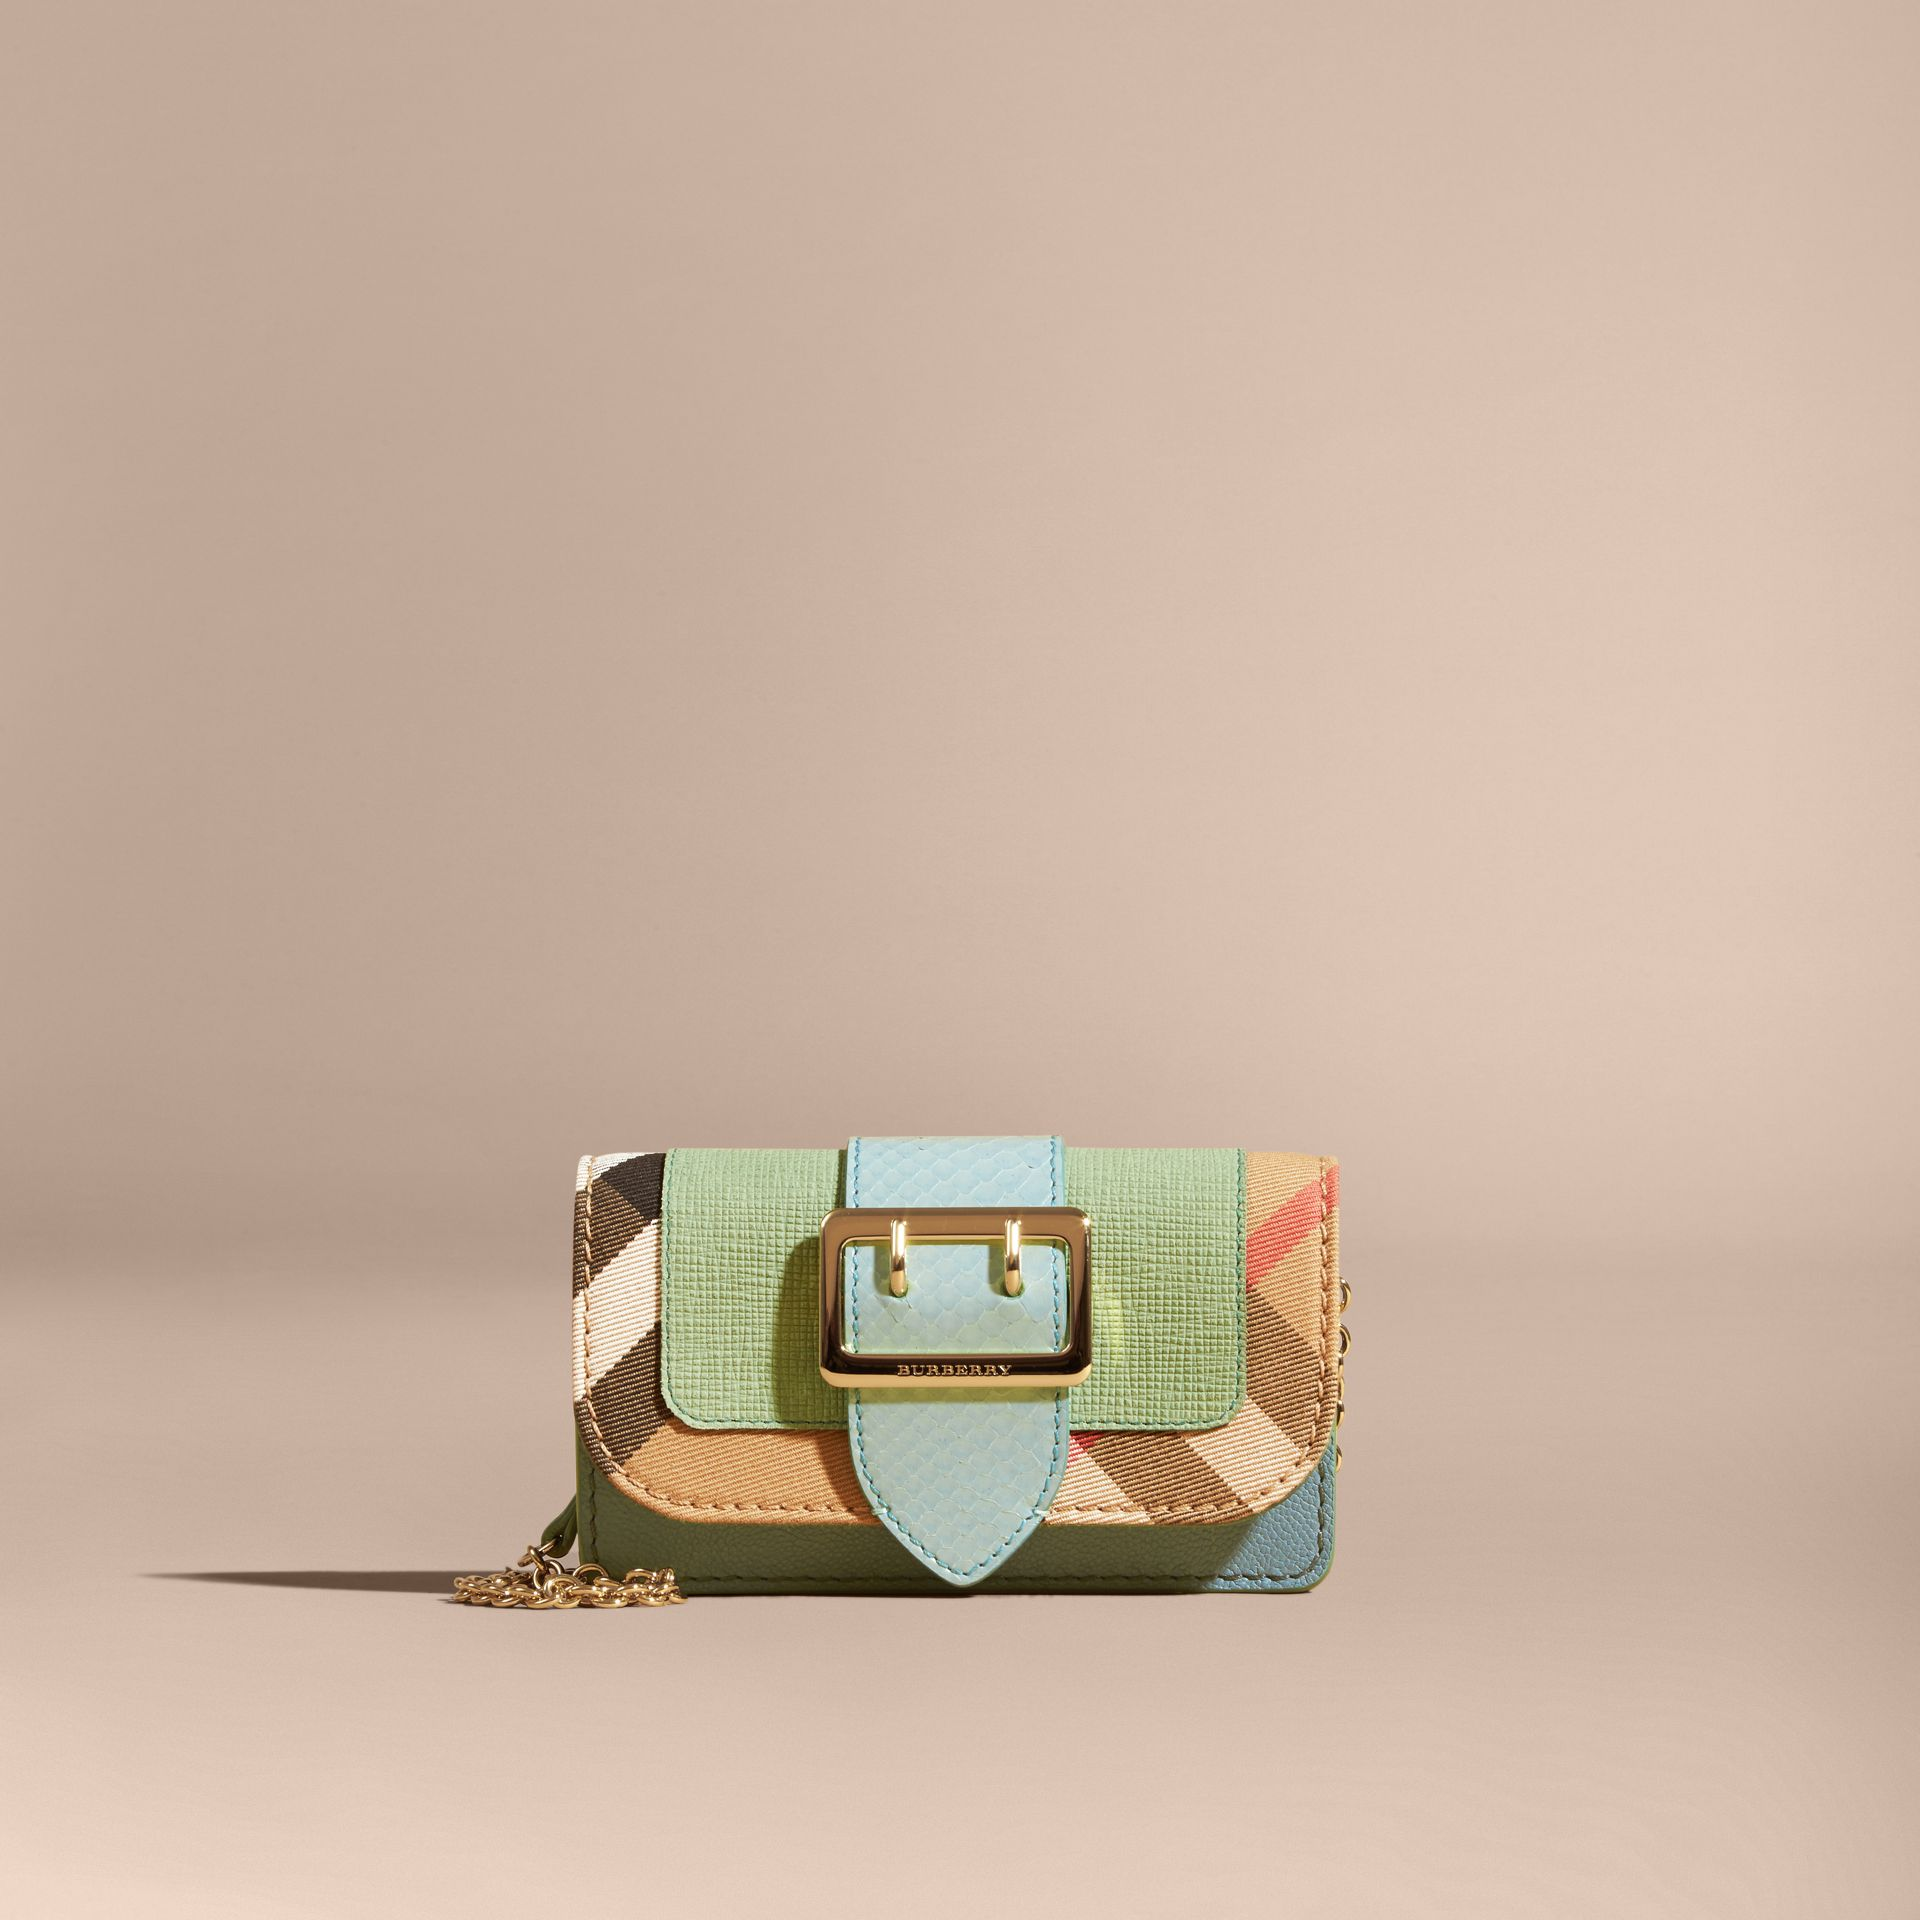 Menta chiaro Borsa The Buckle mini con pelle di serpente e motivo House check - immagine della galleria 8